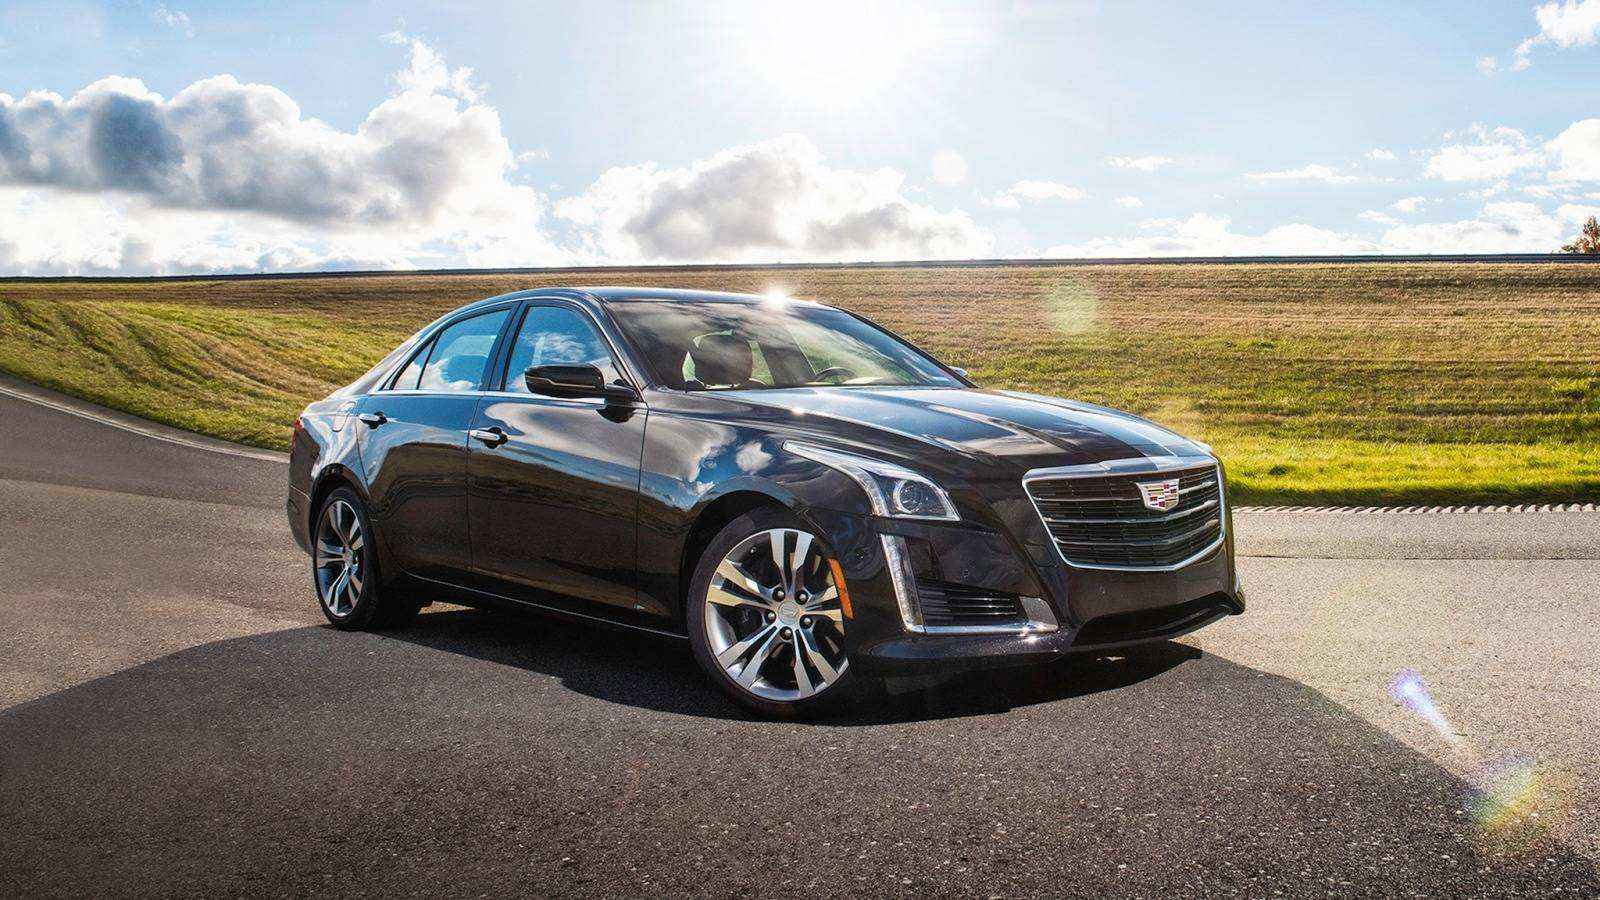 27 All New 2019 Cadillac Ct4 Images by 2019 Cadillac Ct4